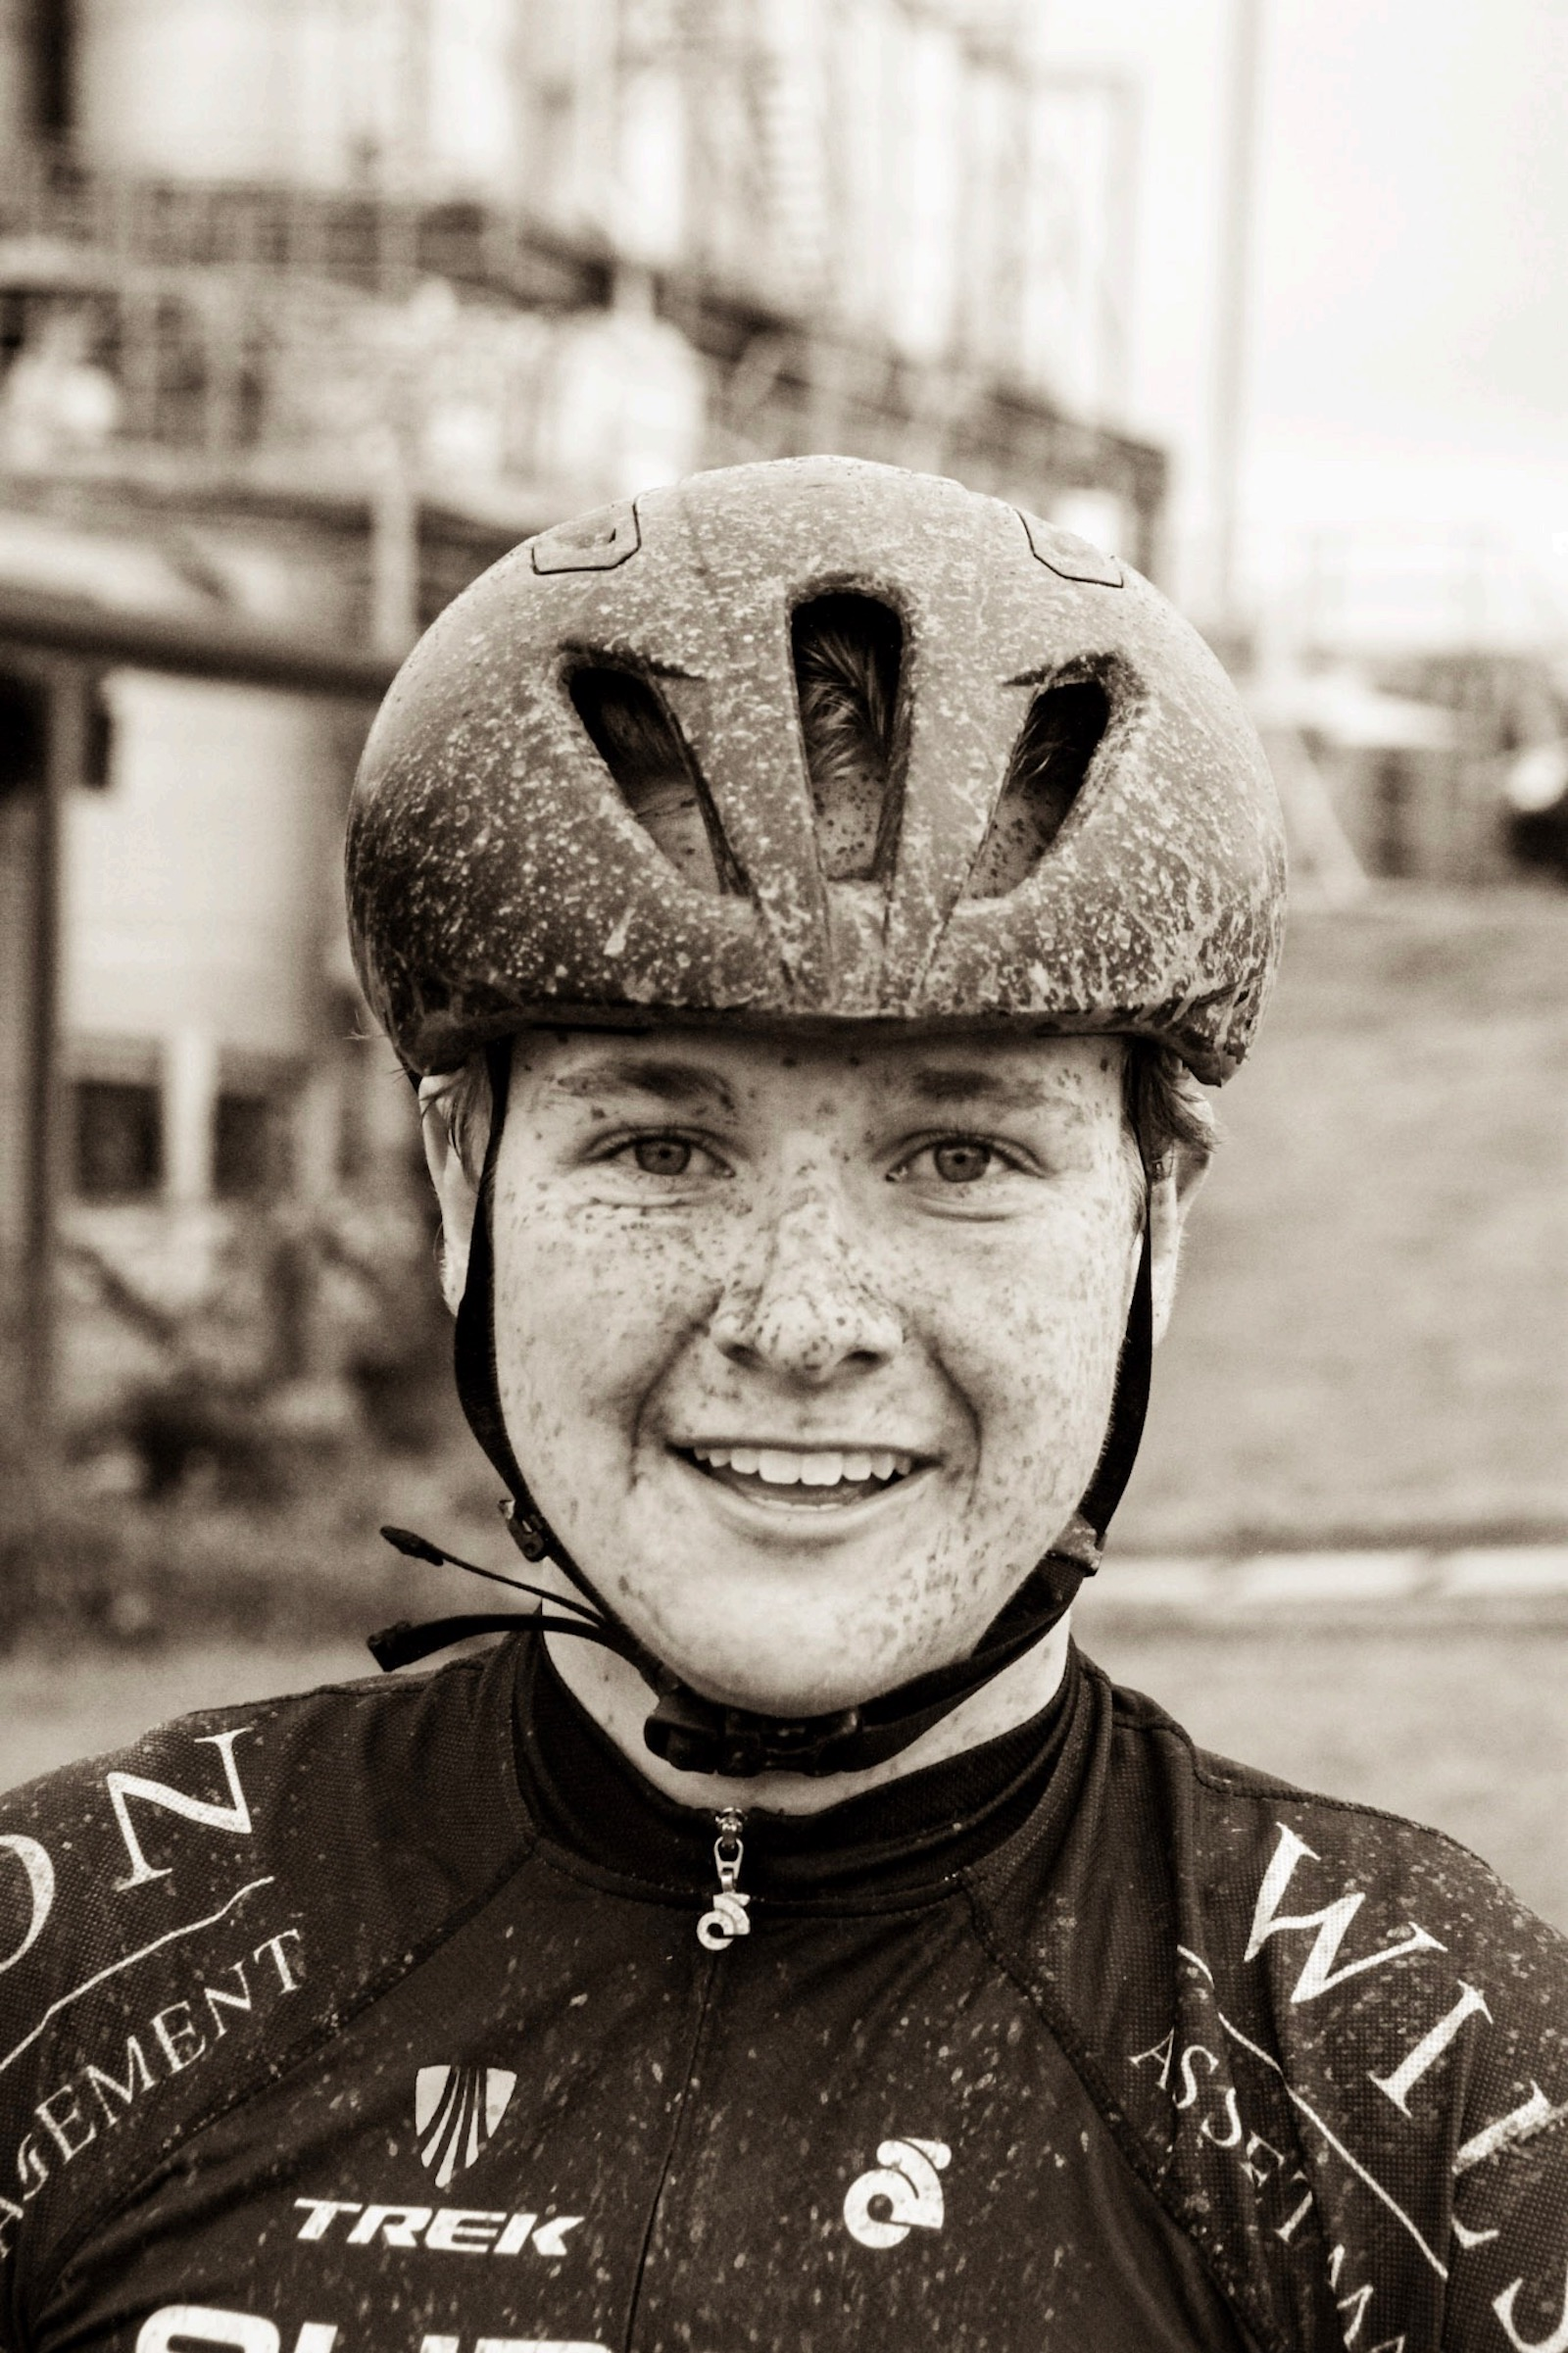 """Adrian Hamilton, Australia. """"My sons first NRS race, Tour of the King Valley. After 135km of hills, rain and dirt, and finishing mid field at 16, the smile tells it all. I asked him if it was hard, and he said, 'no way, that was so much fun'."""" DSLR. @hamobike"""